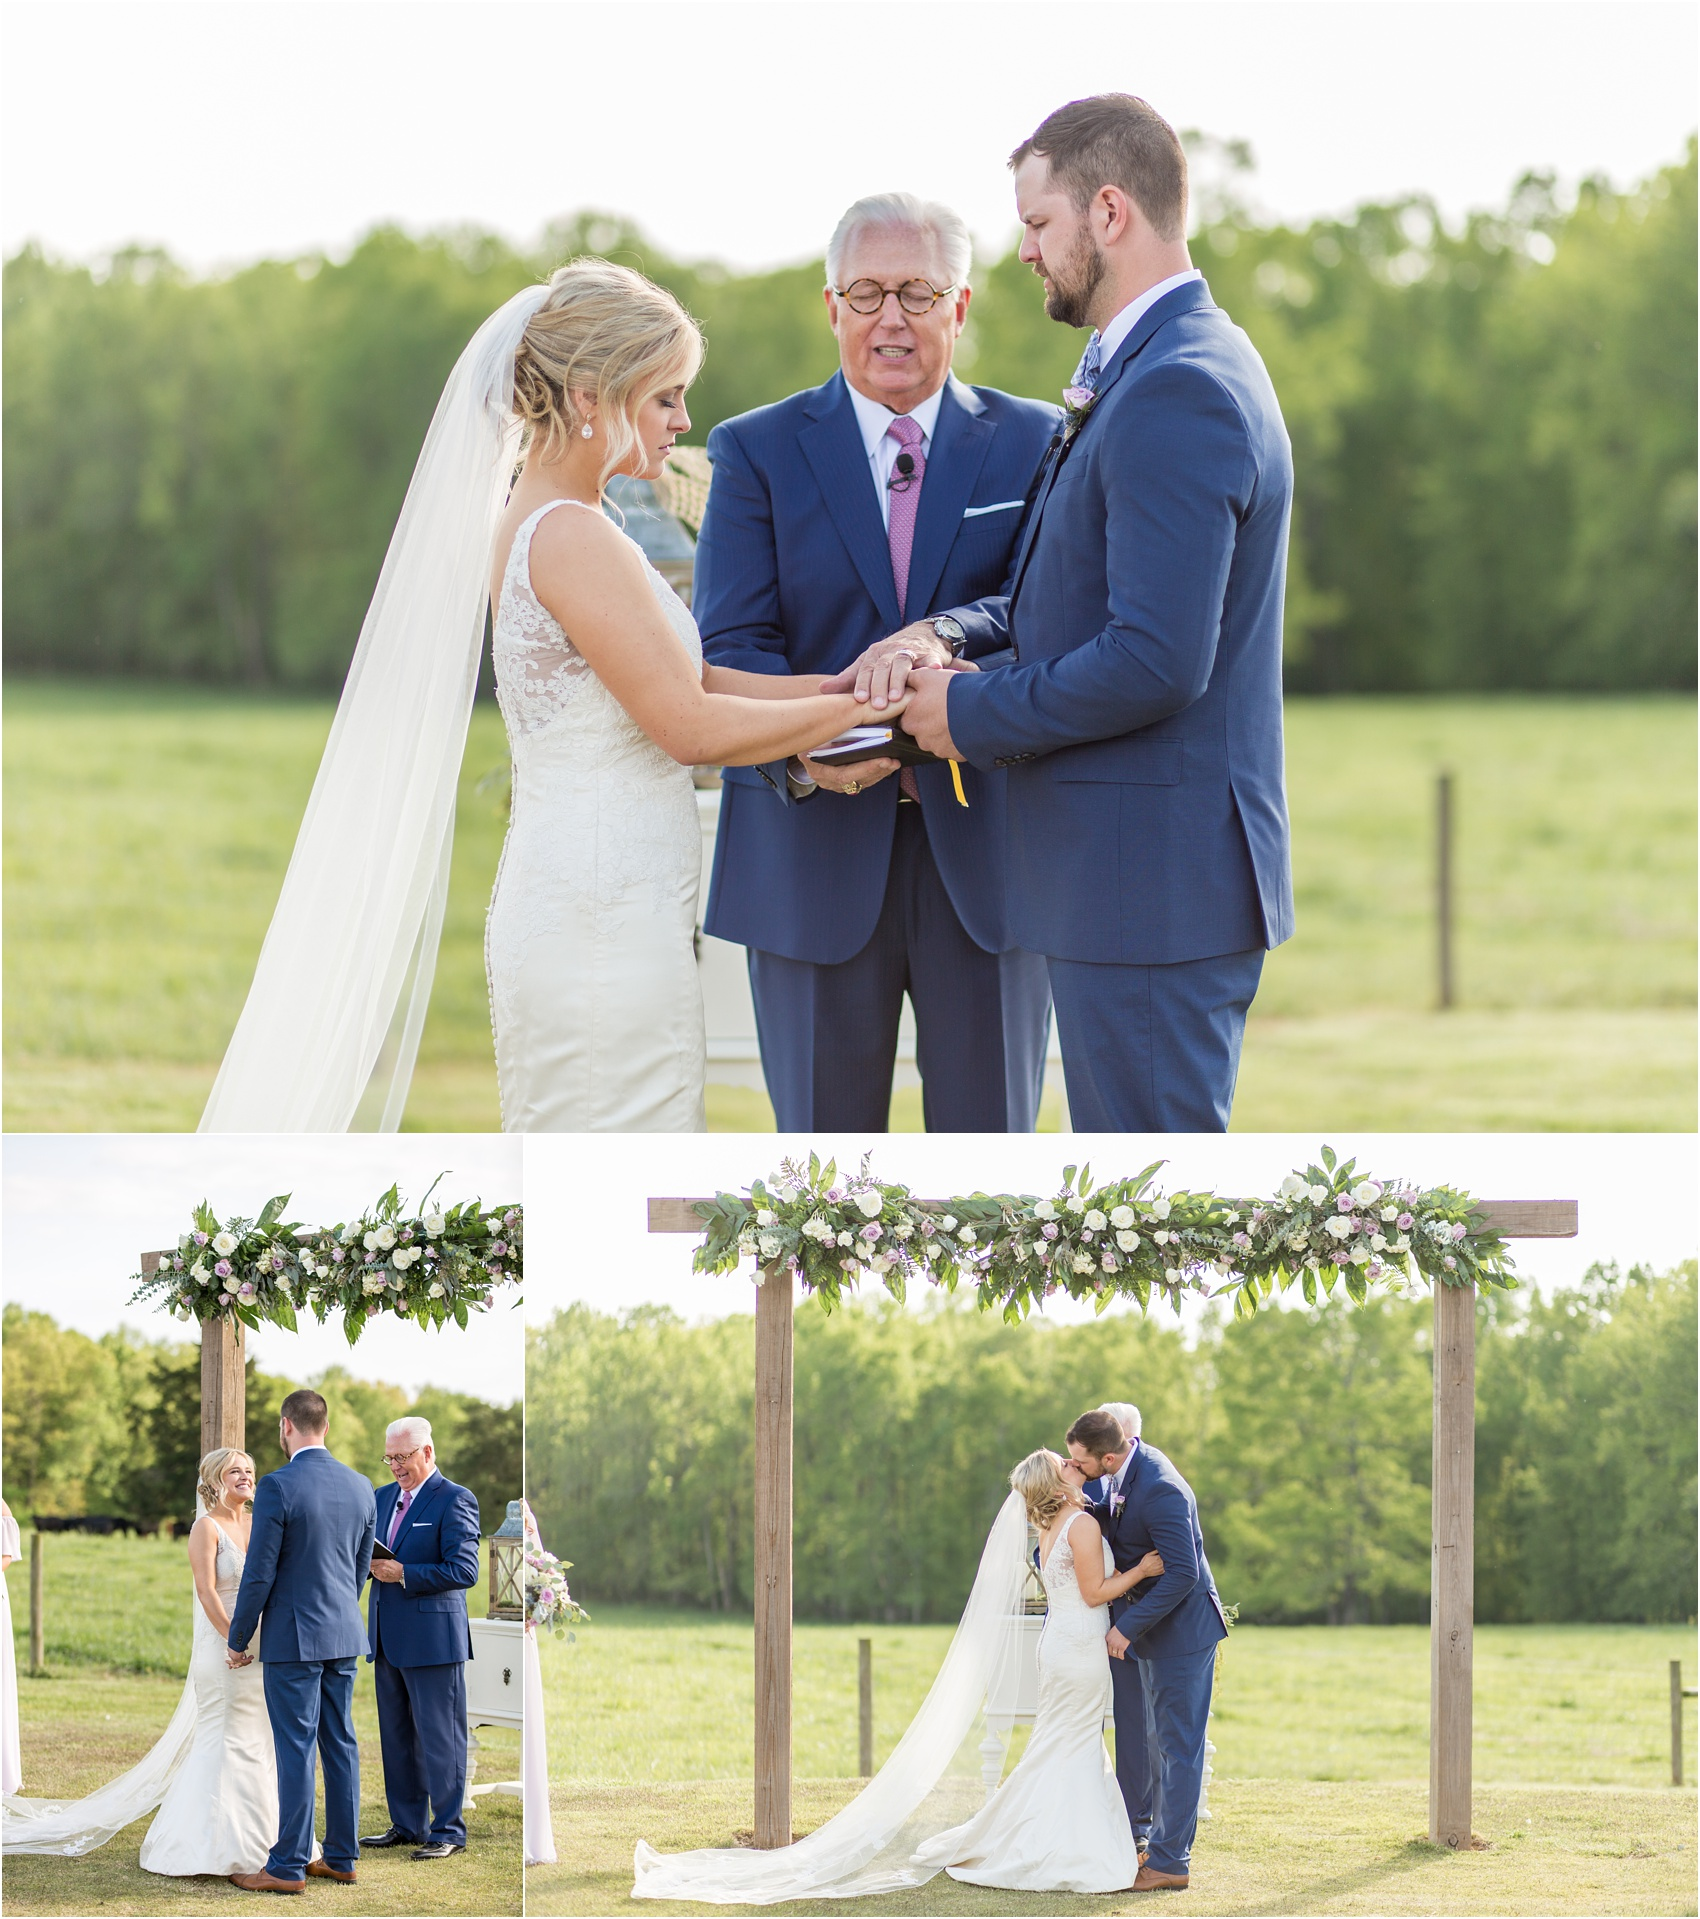 Bleckley Wedding- Sneak Peek-107.jpg